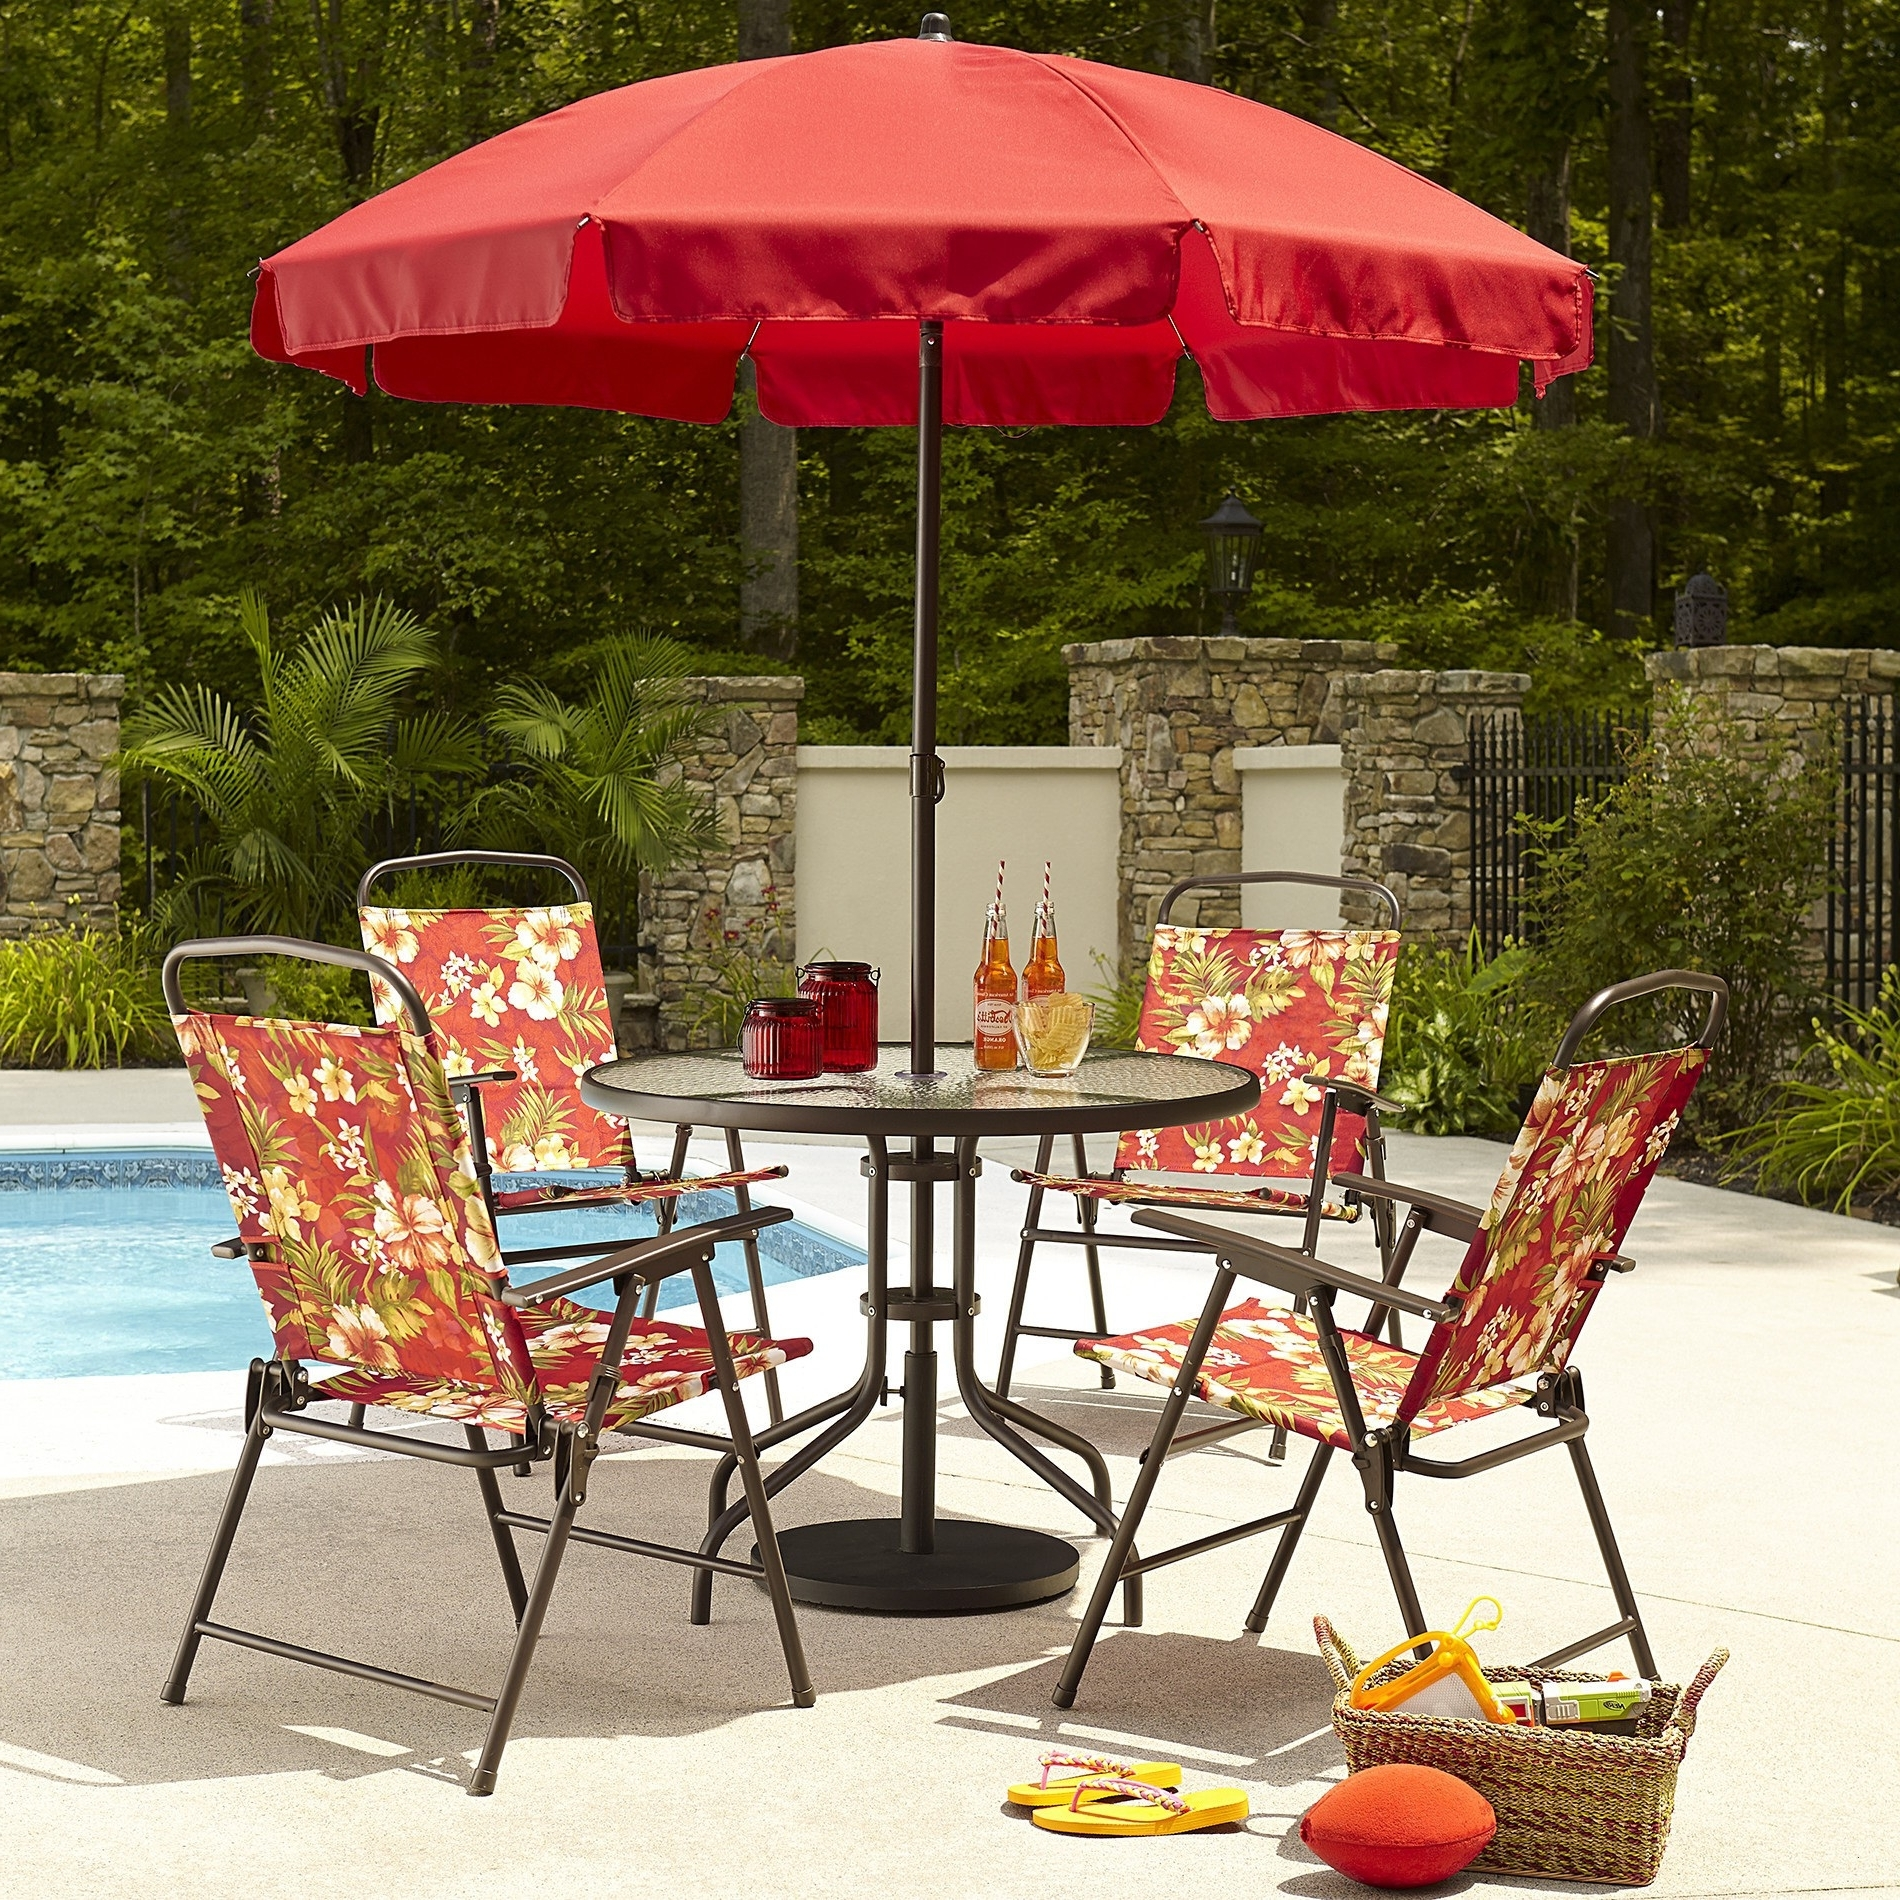 Kmart Patio Umbrellas With Regard To Famous Kmart Outdoor Furniture Clearance New Cheap Kmart Patio Umbrellas (Gallery 2 of 20)